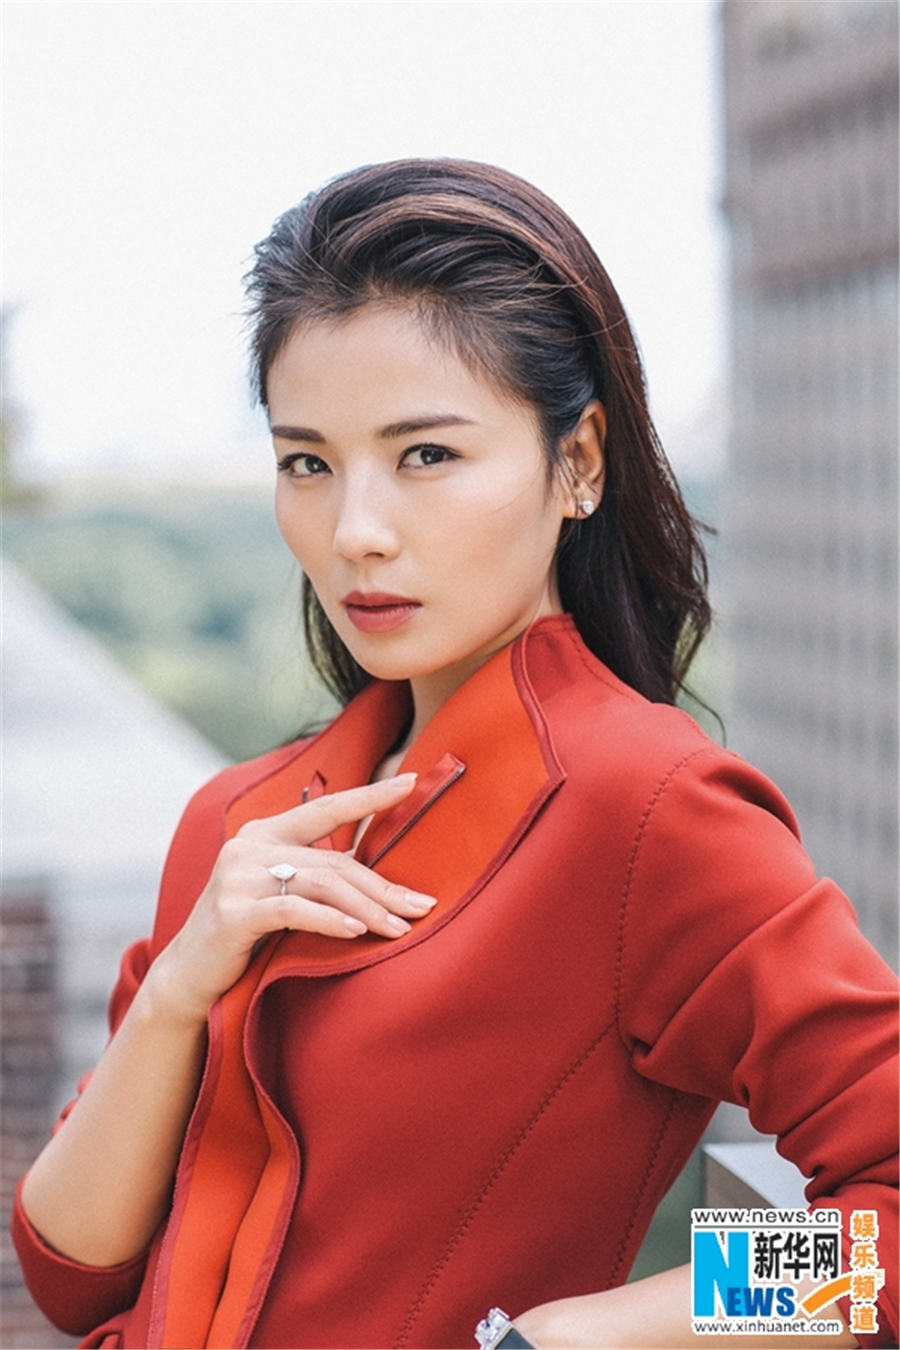 Watch Liu Tao video